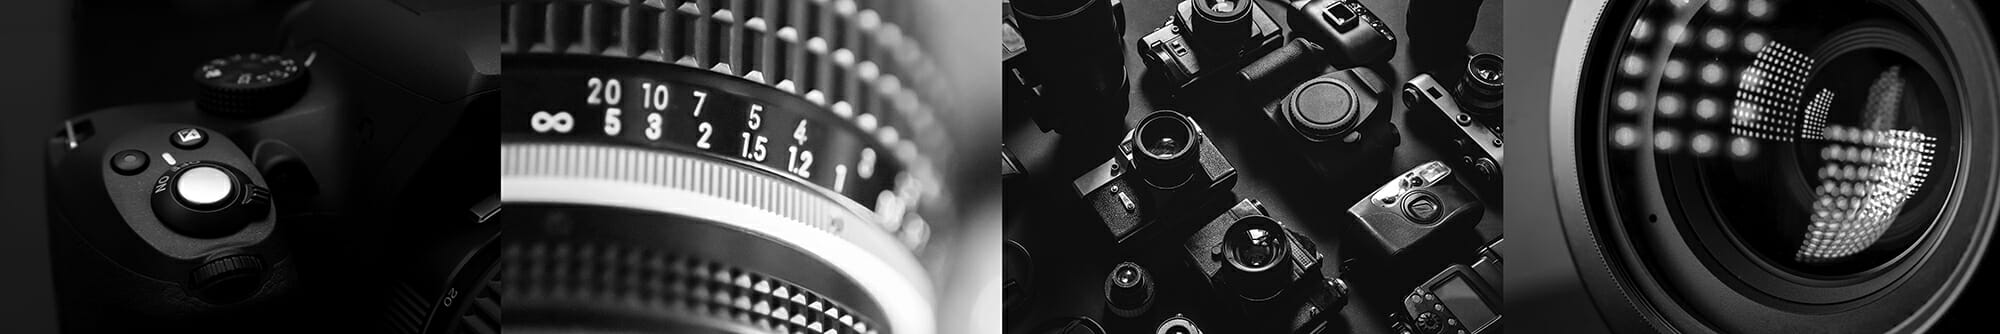 black and white camera close up vintage aperture ring digital dslr lens glass photography